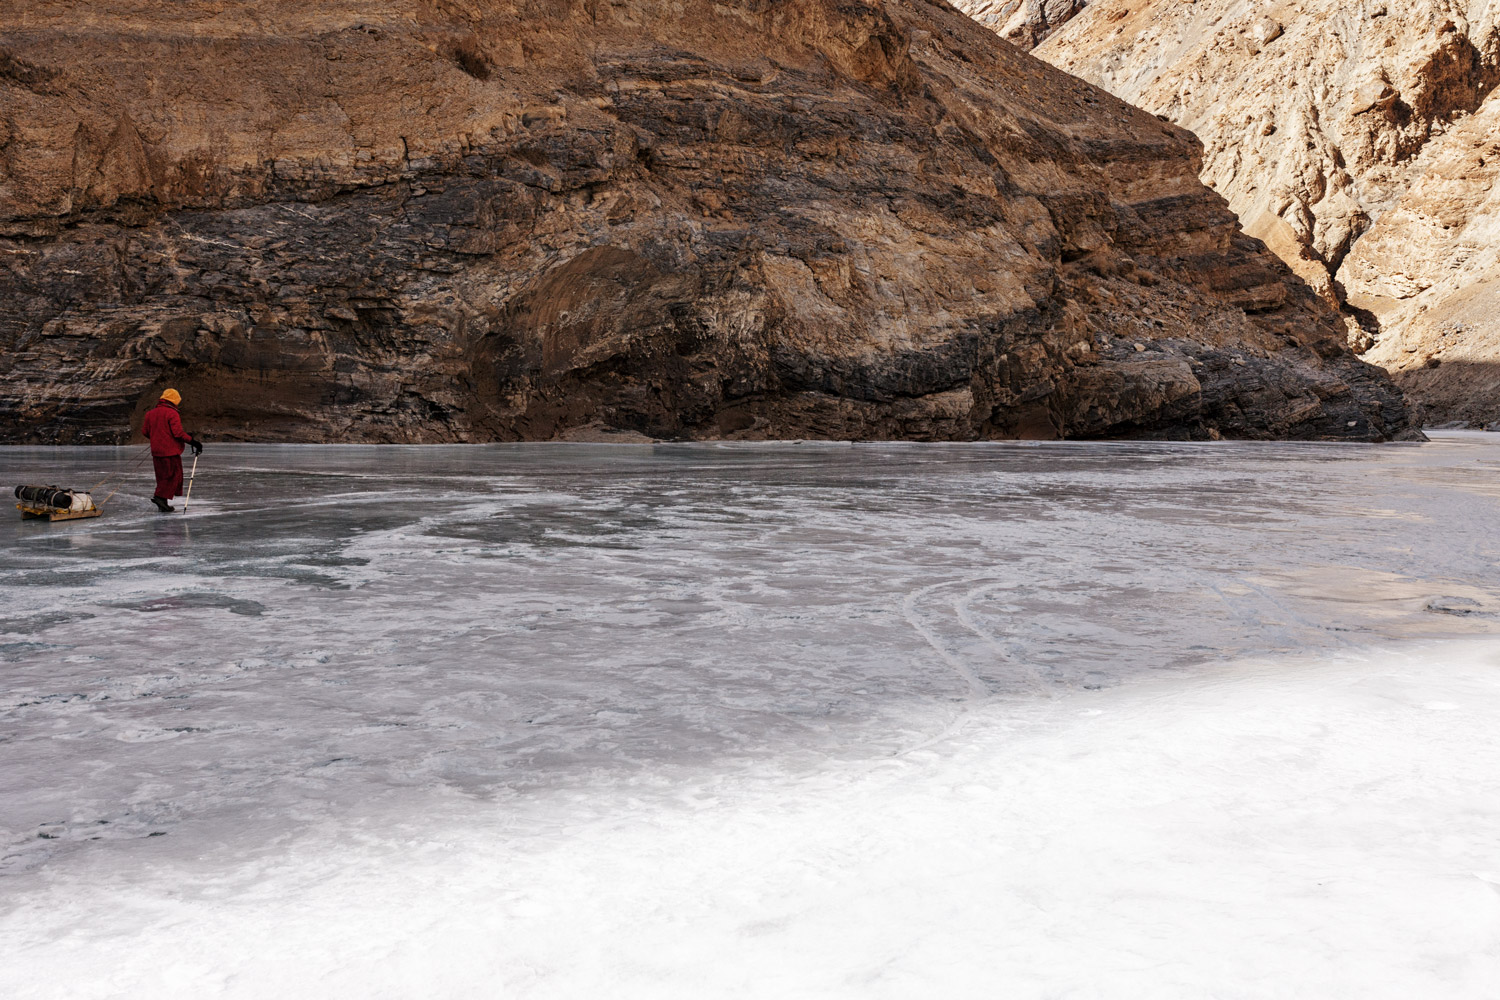 Ladakh. The Zanskar river during winter is frozen. It is the only way back to the capital from the valley of Zanskar.